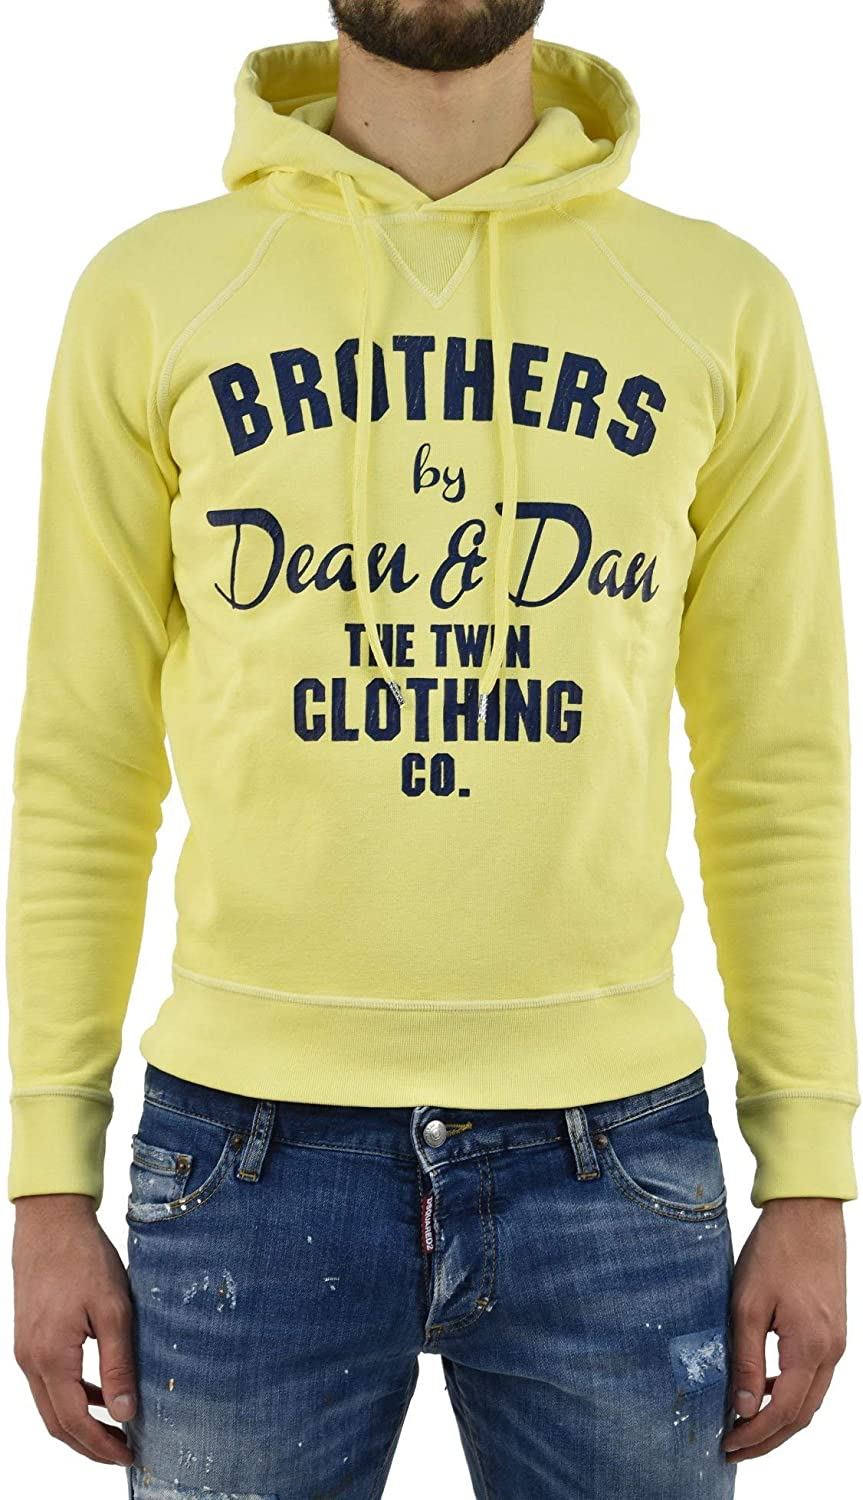 Dsquared2 Sweater Twin Clothing Men  Size  M  color  Yellow  New